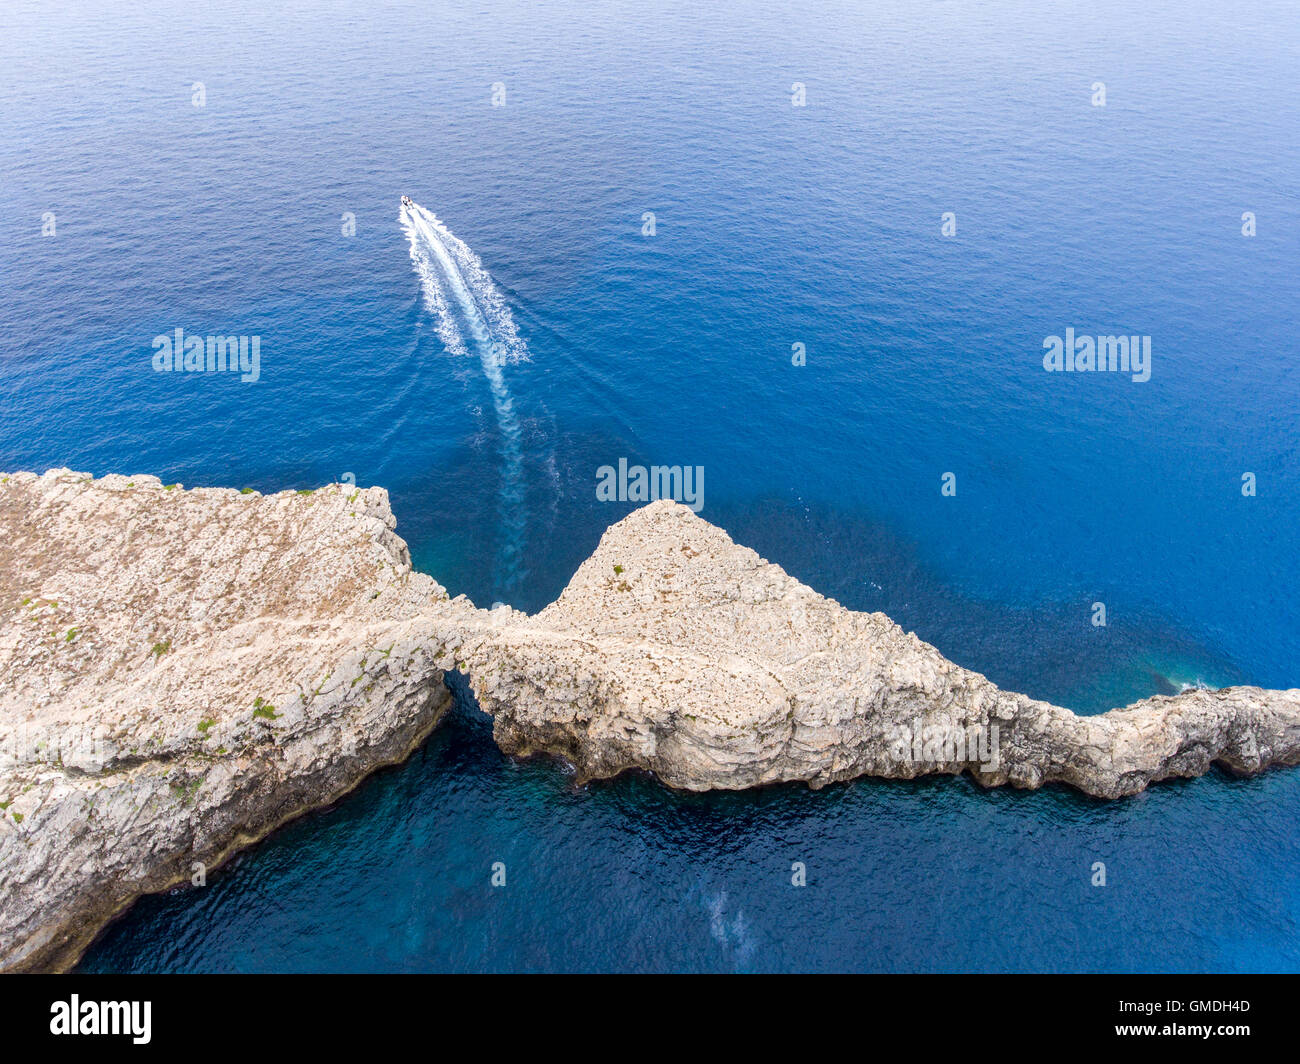 Aerial view at Pont d'en Gil with speeding boat - Stock Image